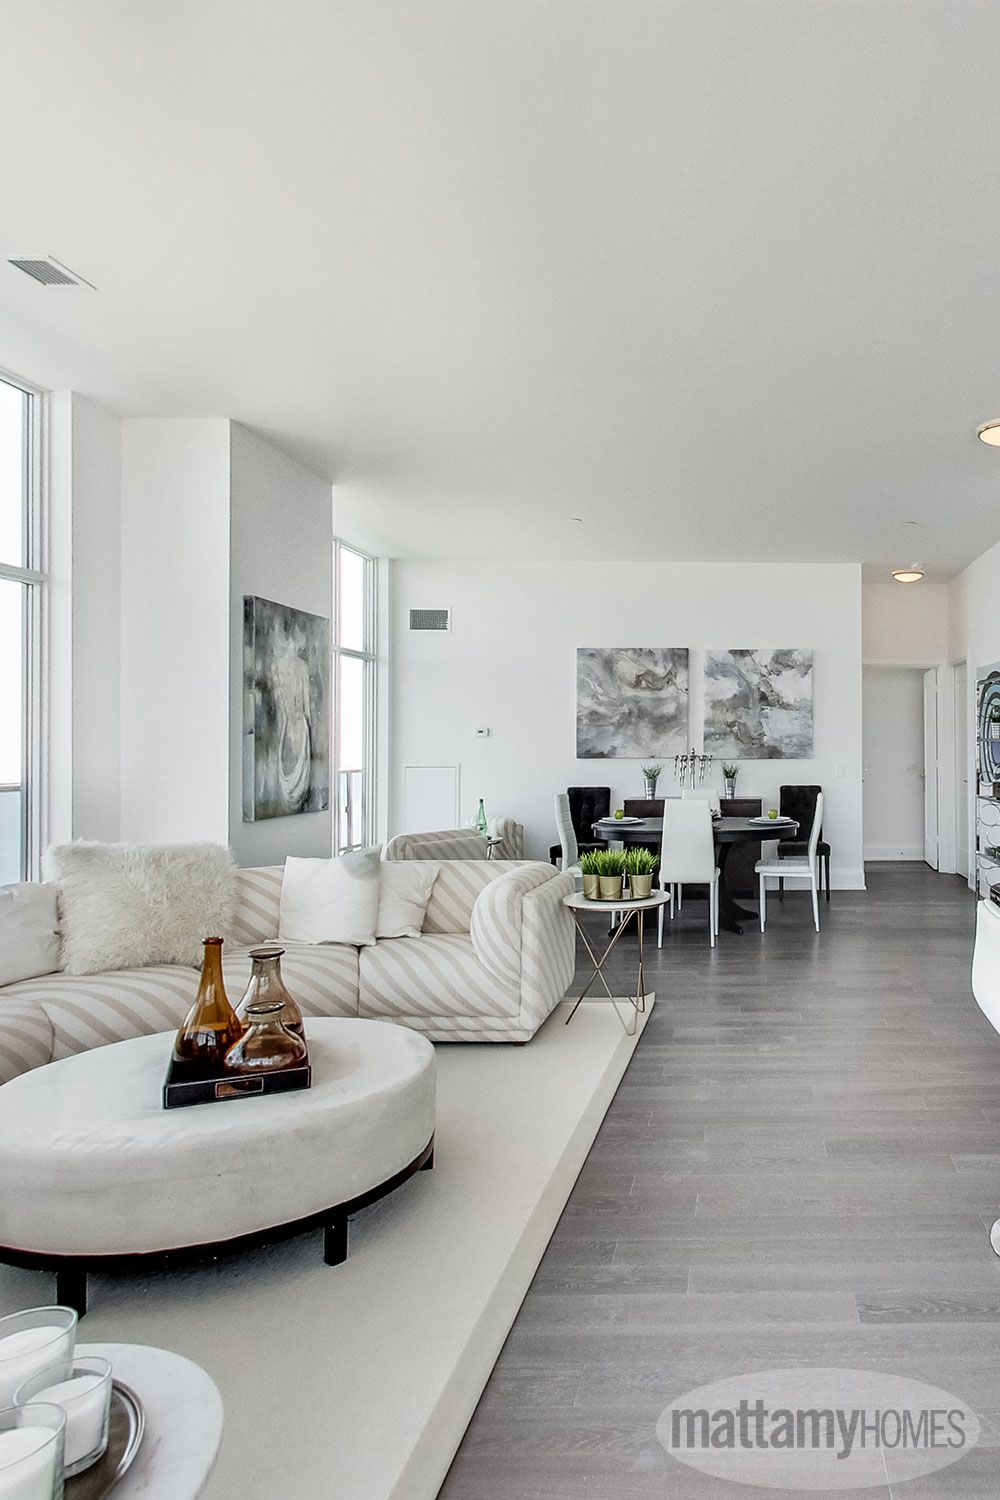 Aménager Un Salon Tout En Longueur open concept living rooms, combined with floor to ceiling